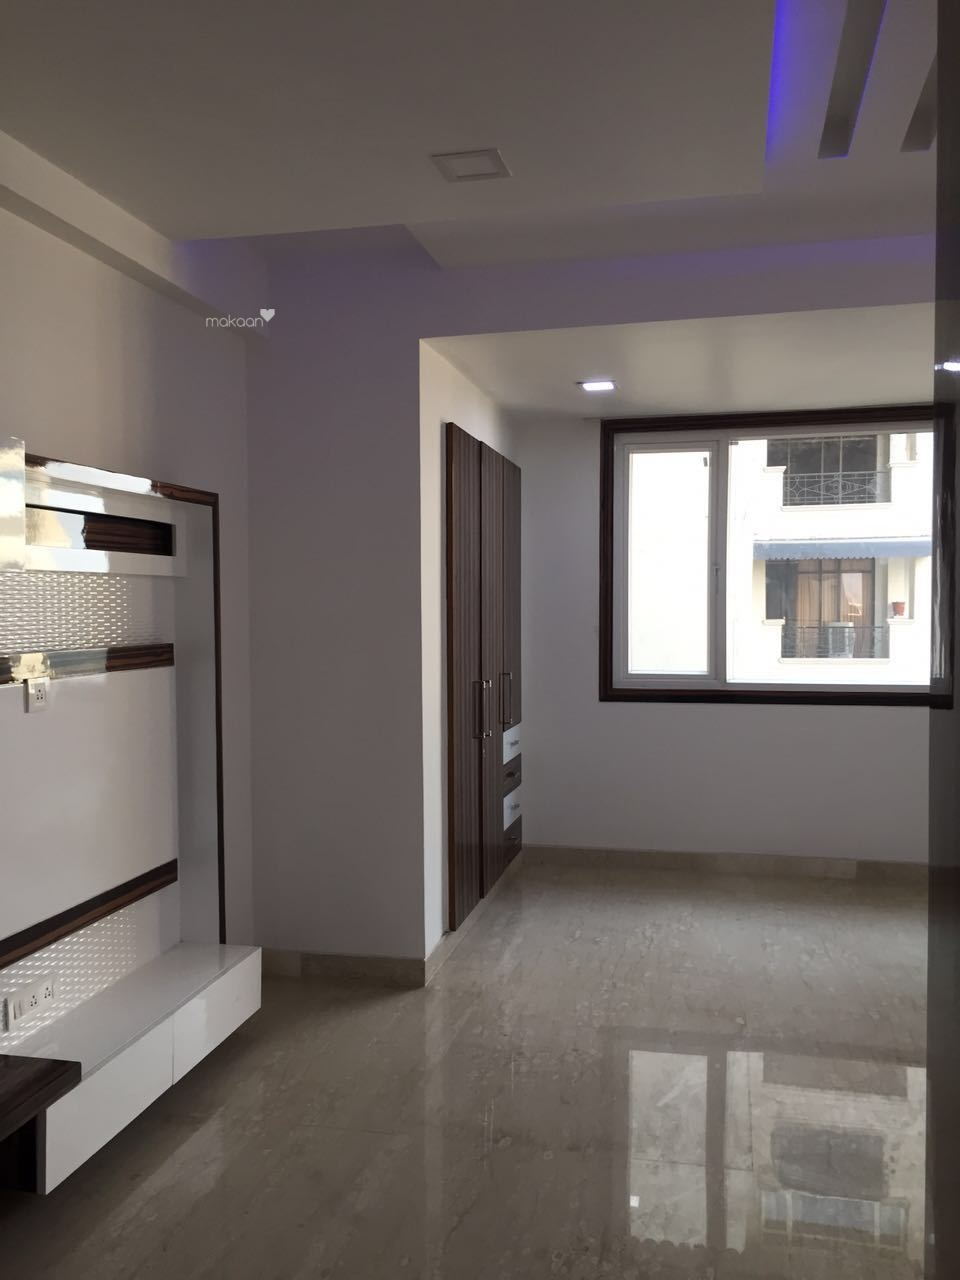 5600 sq ft 6BHK 6BHK+5T (5,600 sq ft) + Store Room Property By sinha real estate In The Shabad, Sector 13 Dwarka